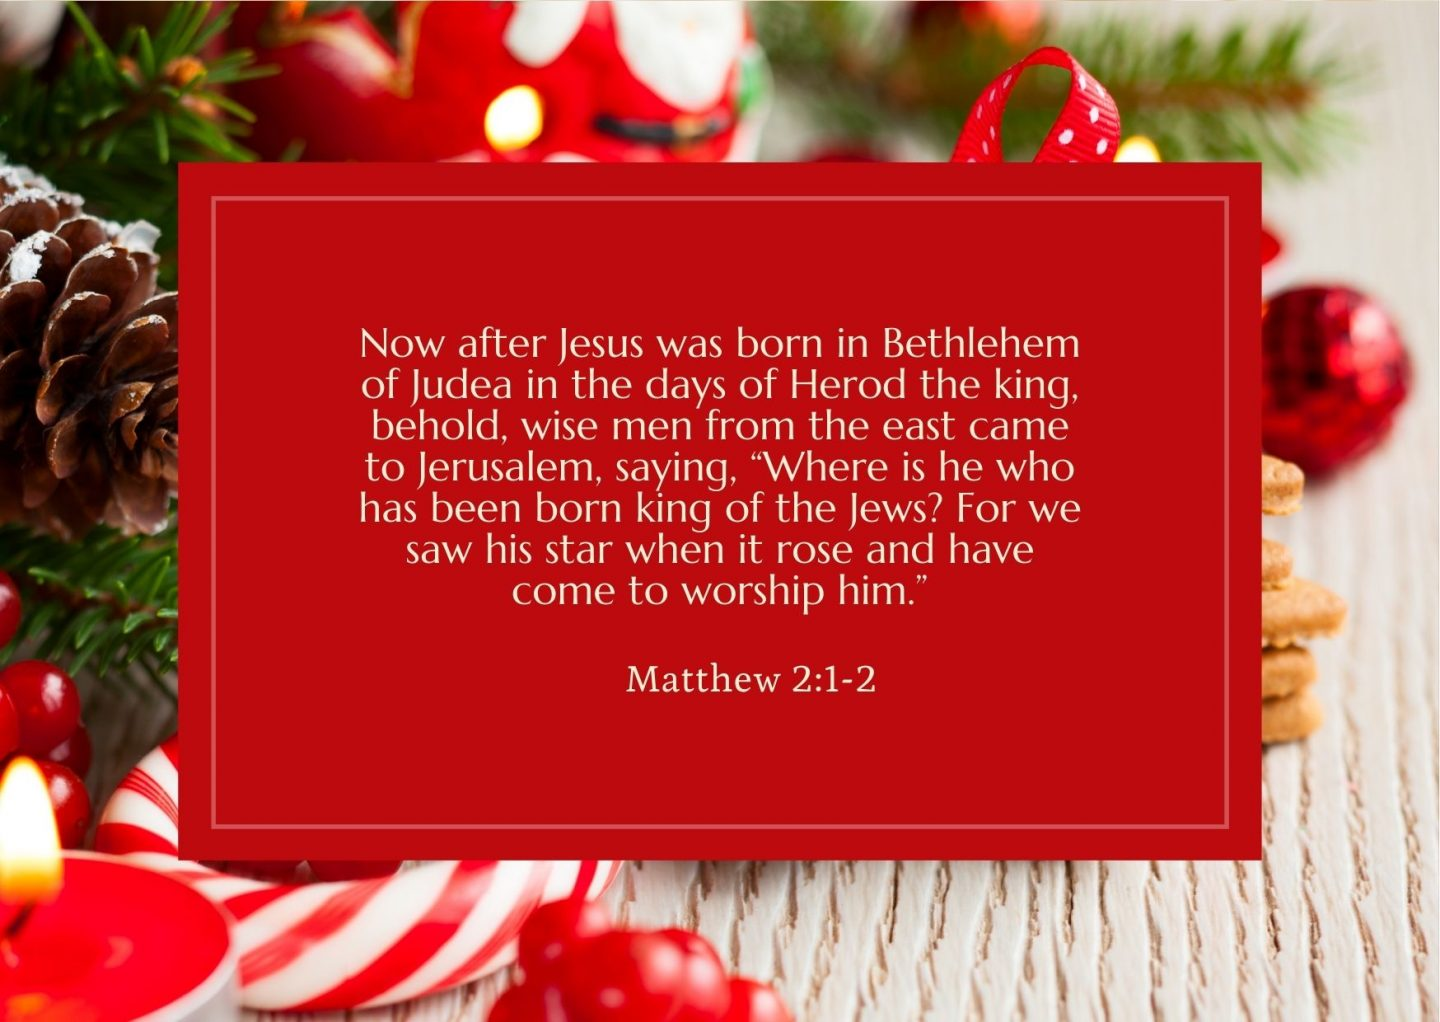 """Now after Jesus was born in Bethlehem of Judea in the days of Herod the king, behold, wise men from the east came to Jerusalem, saying, """"Where is he who has been born king of the Jews? For we saw his star when it rose and have come to worship him."""" Matthew 2:1-2"""